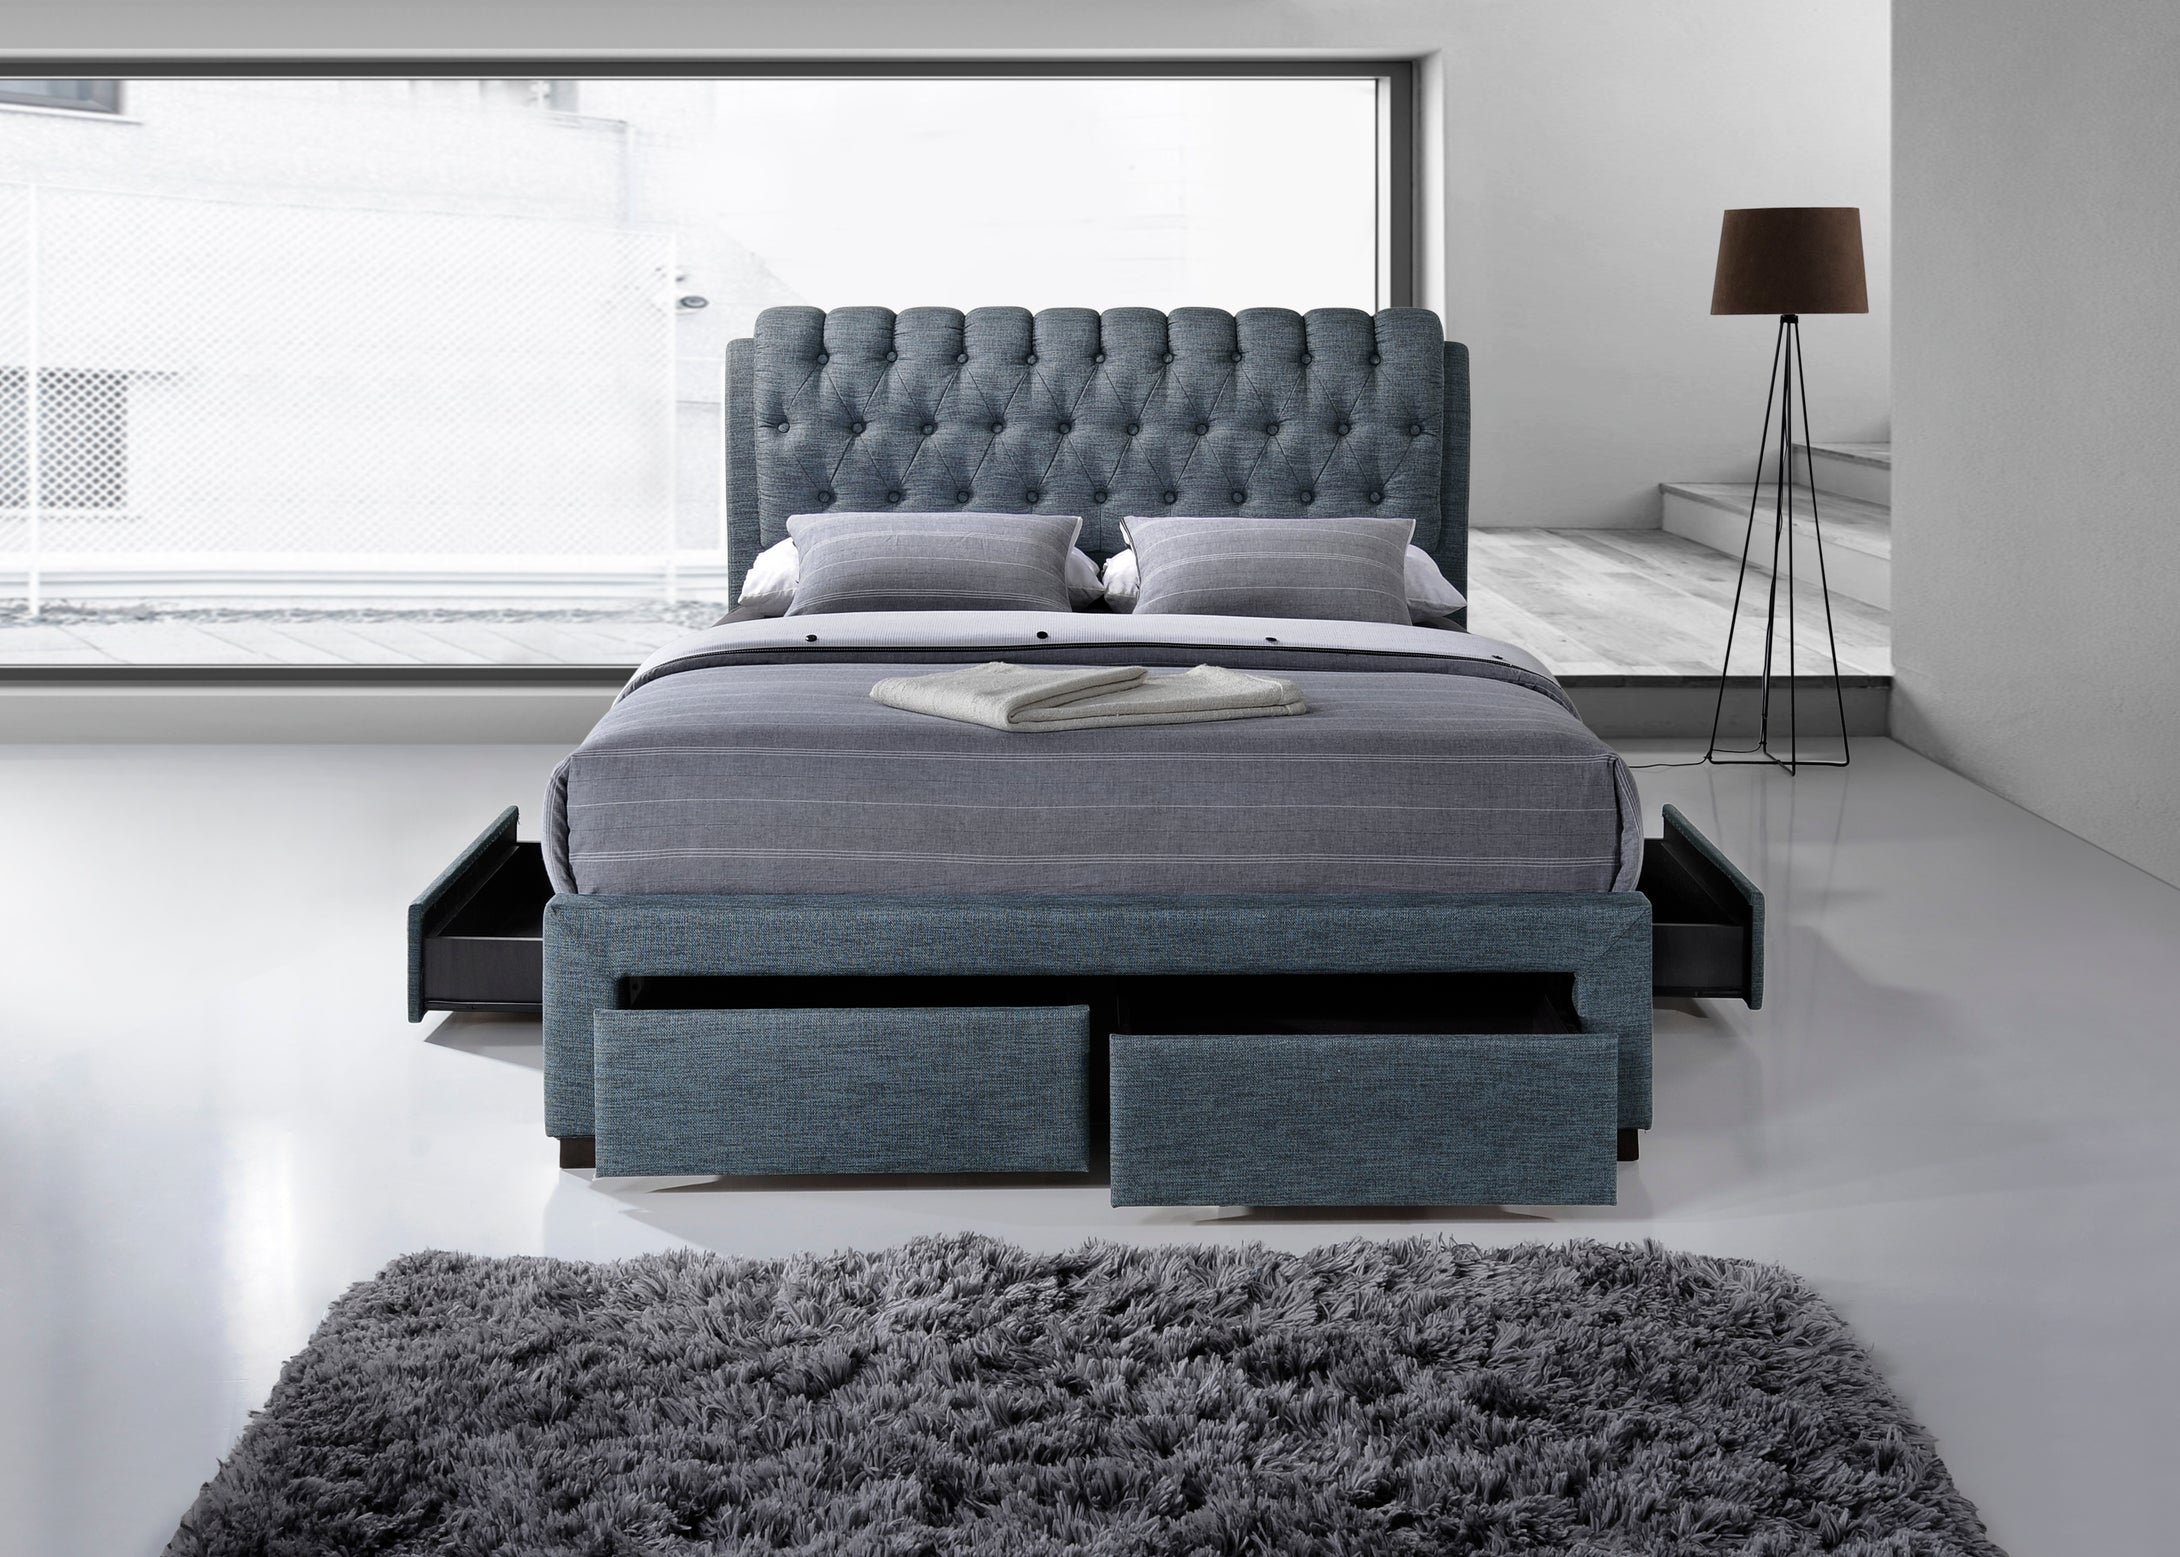 Artisan Grey Fabric 4 drawer storage bed 3013 - bedsmart